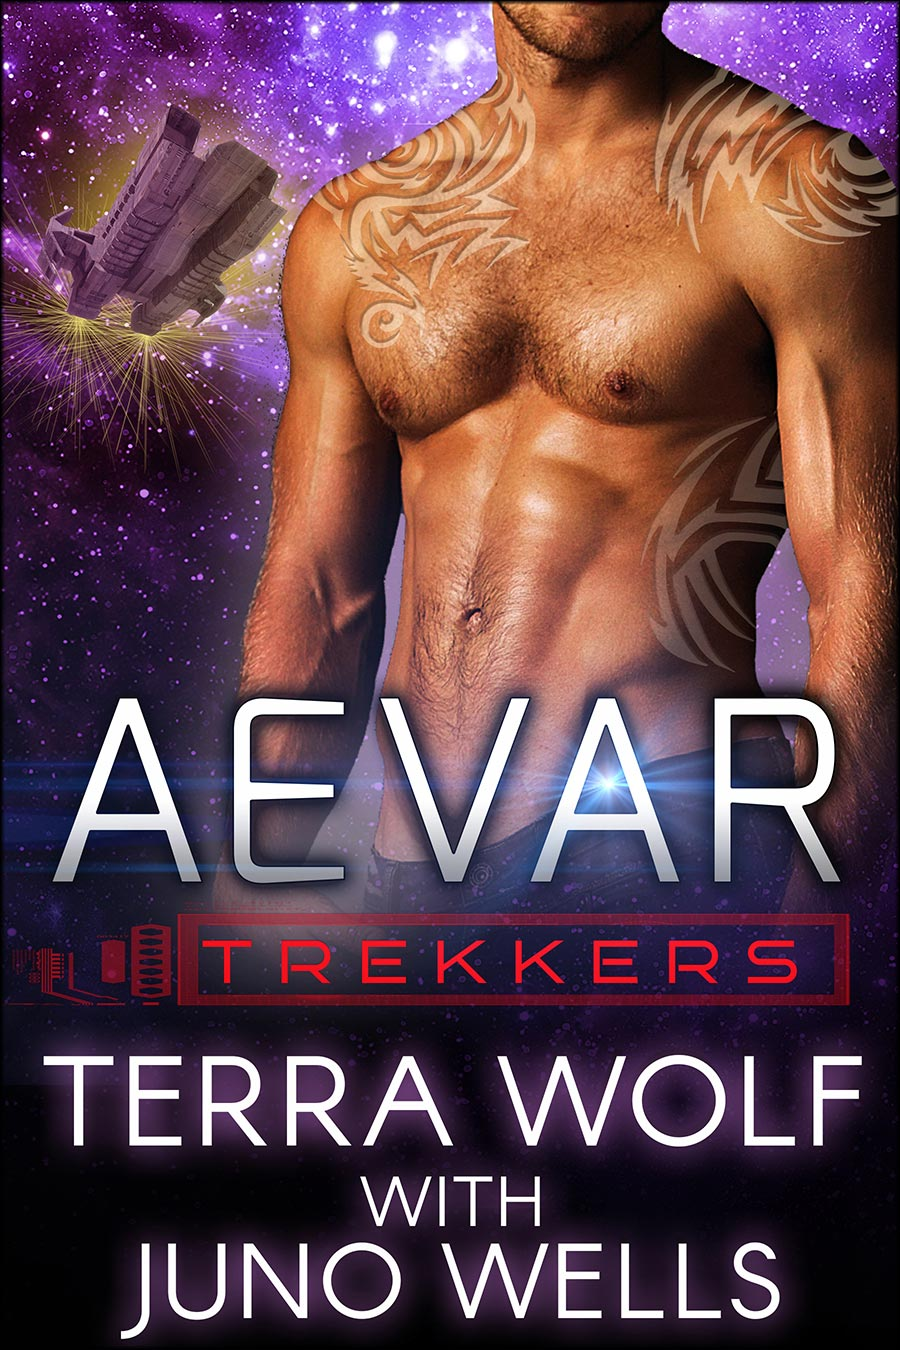 Aevar---Trekkers-cover---Terra-Wolf-and-Juno-Wells.jpg